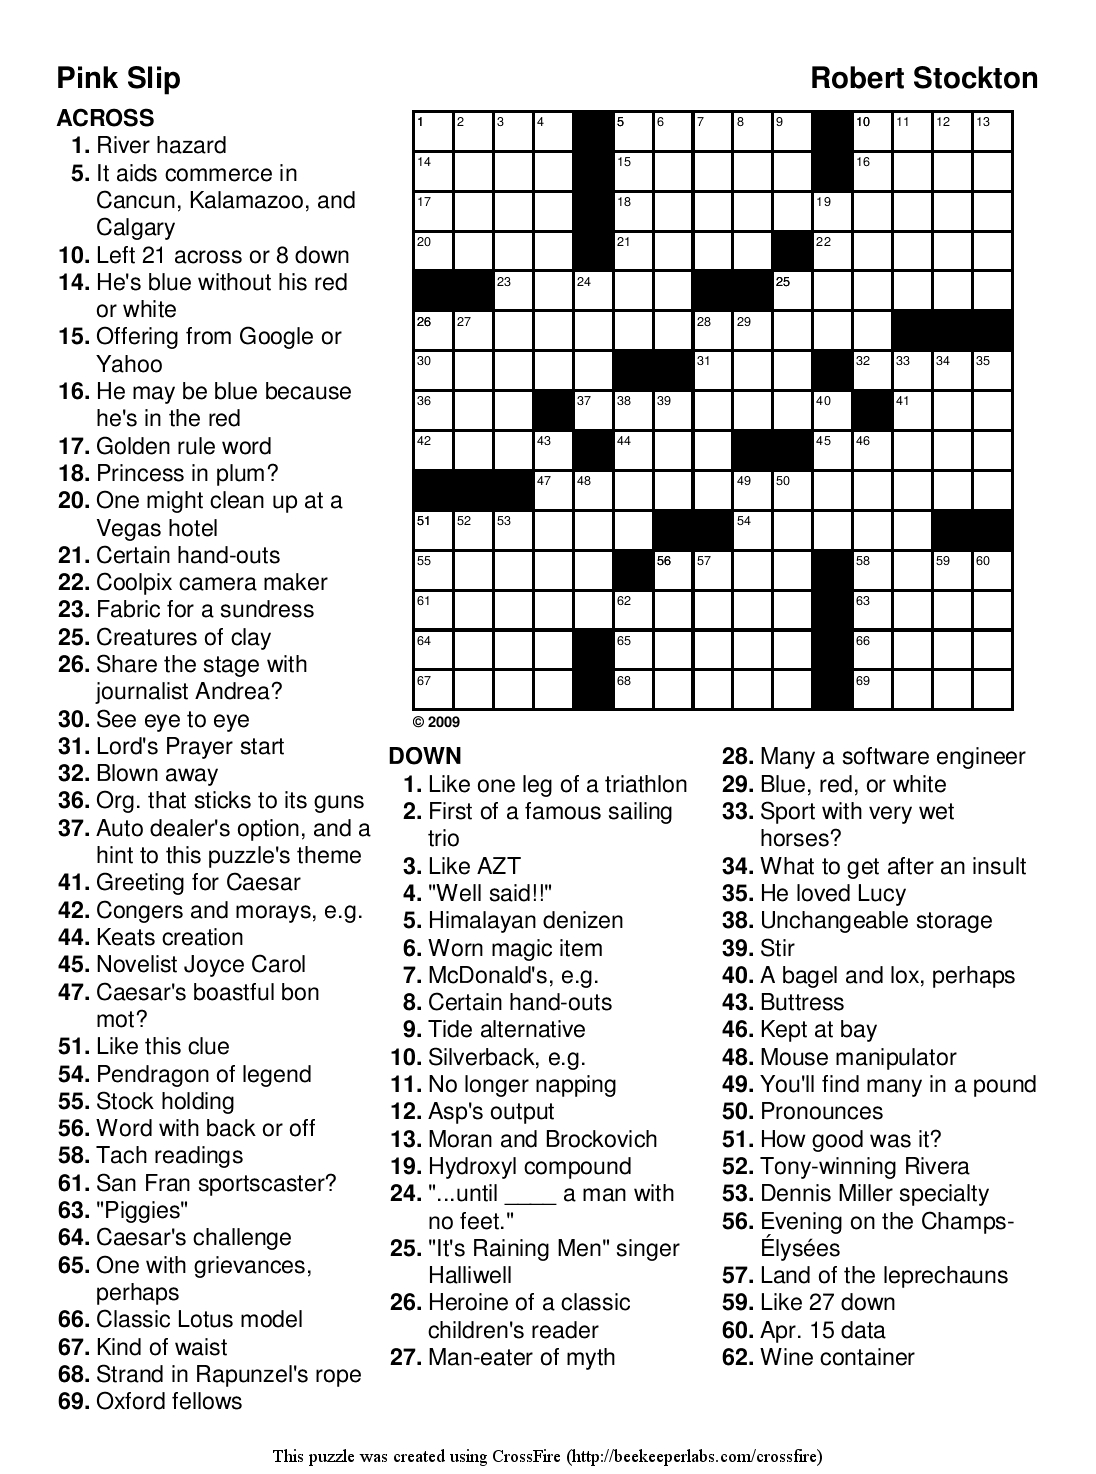 Easy Printable Crossword Puzzels - Infocap Ltd. - Printable Crossword Puzzles Easy With Answers